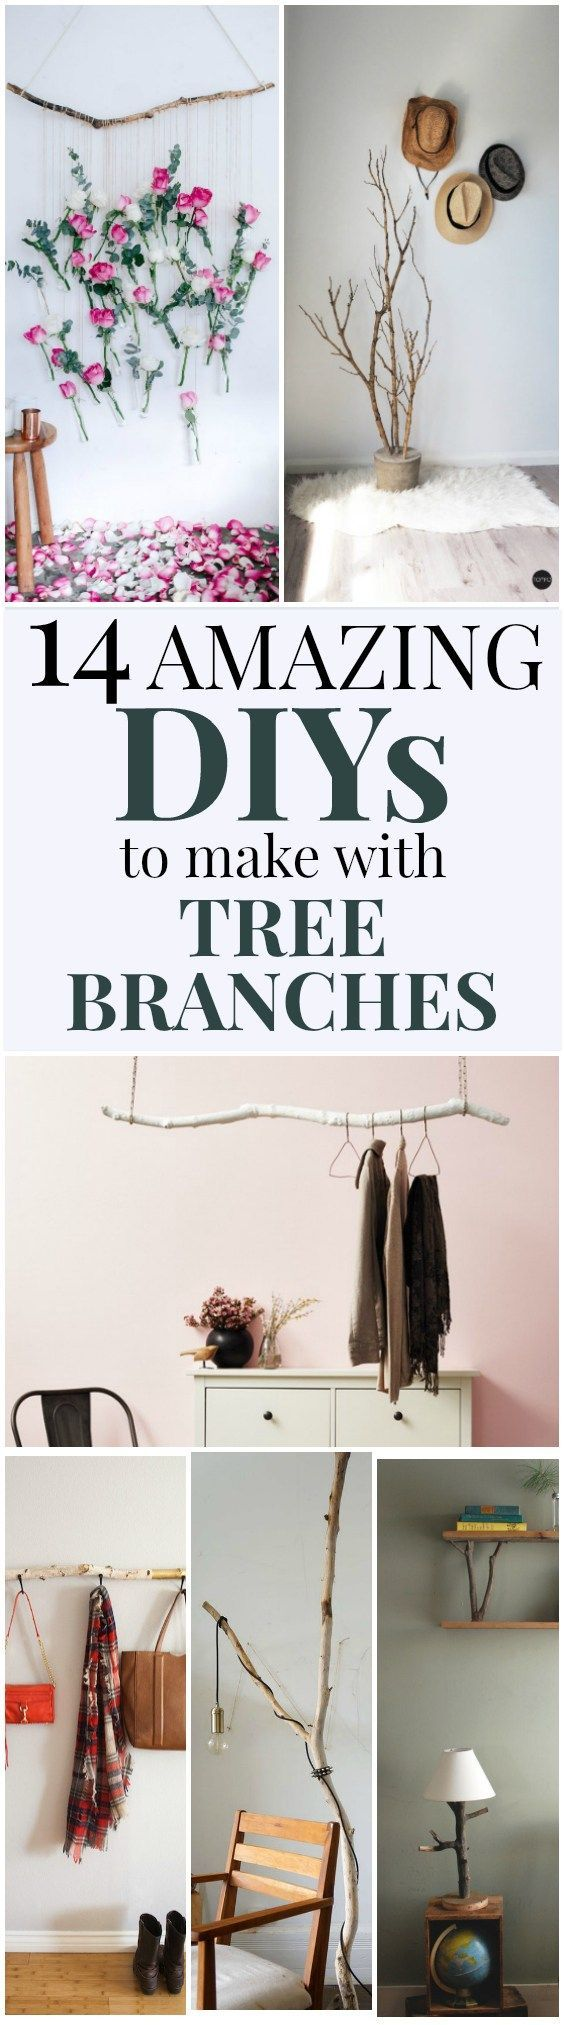 How to's : 14 Home Decor DIYs to Make with Tree Branches | These DIYs made with repurposed tree branches will bring natural wood into your home decor! Perfect for minimalist and modern home decor styles! #DIY #repurpose #DIYhomedecor